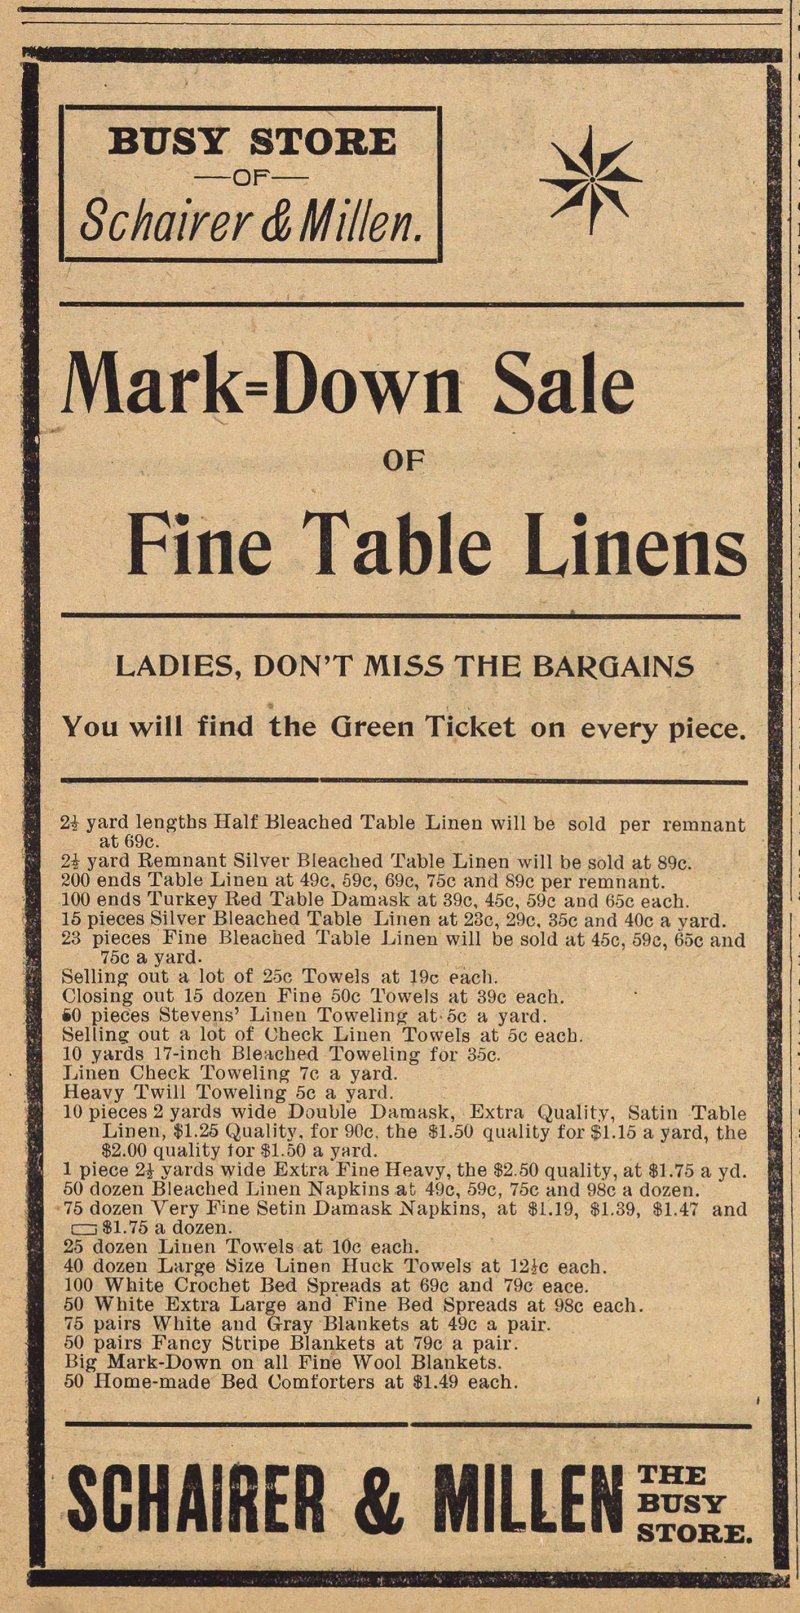 Fine Table Linens image